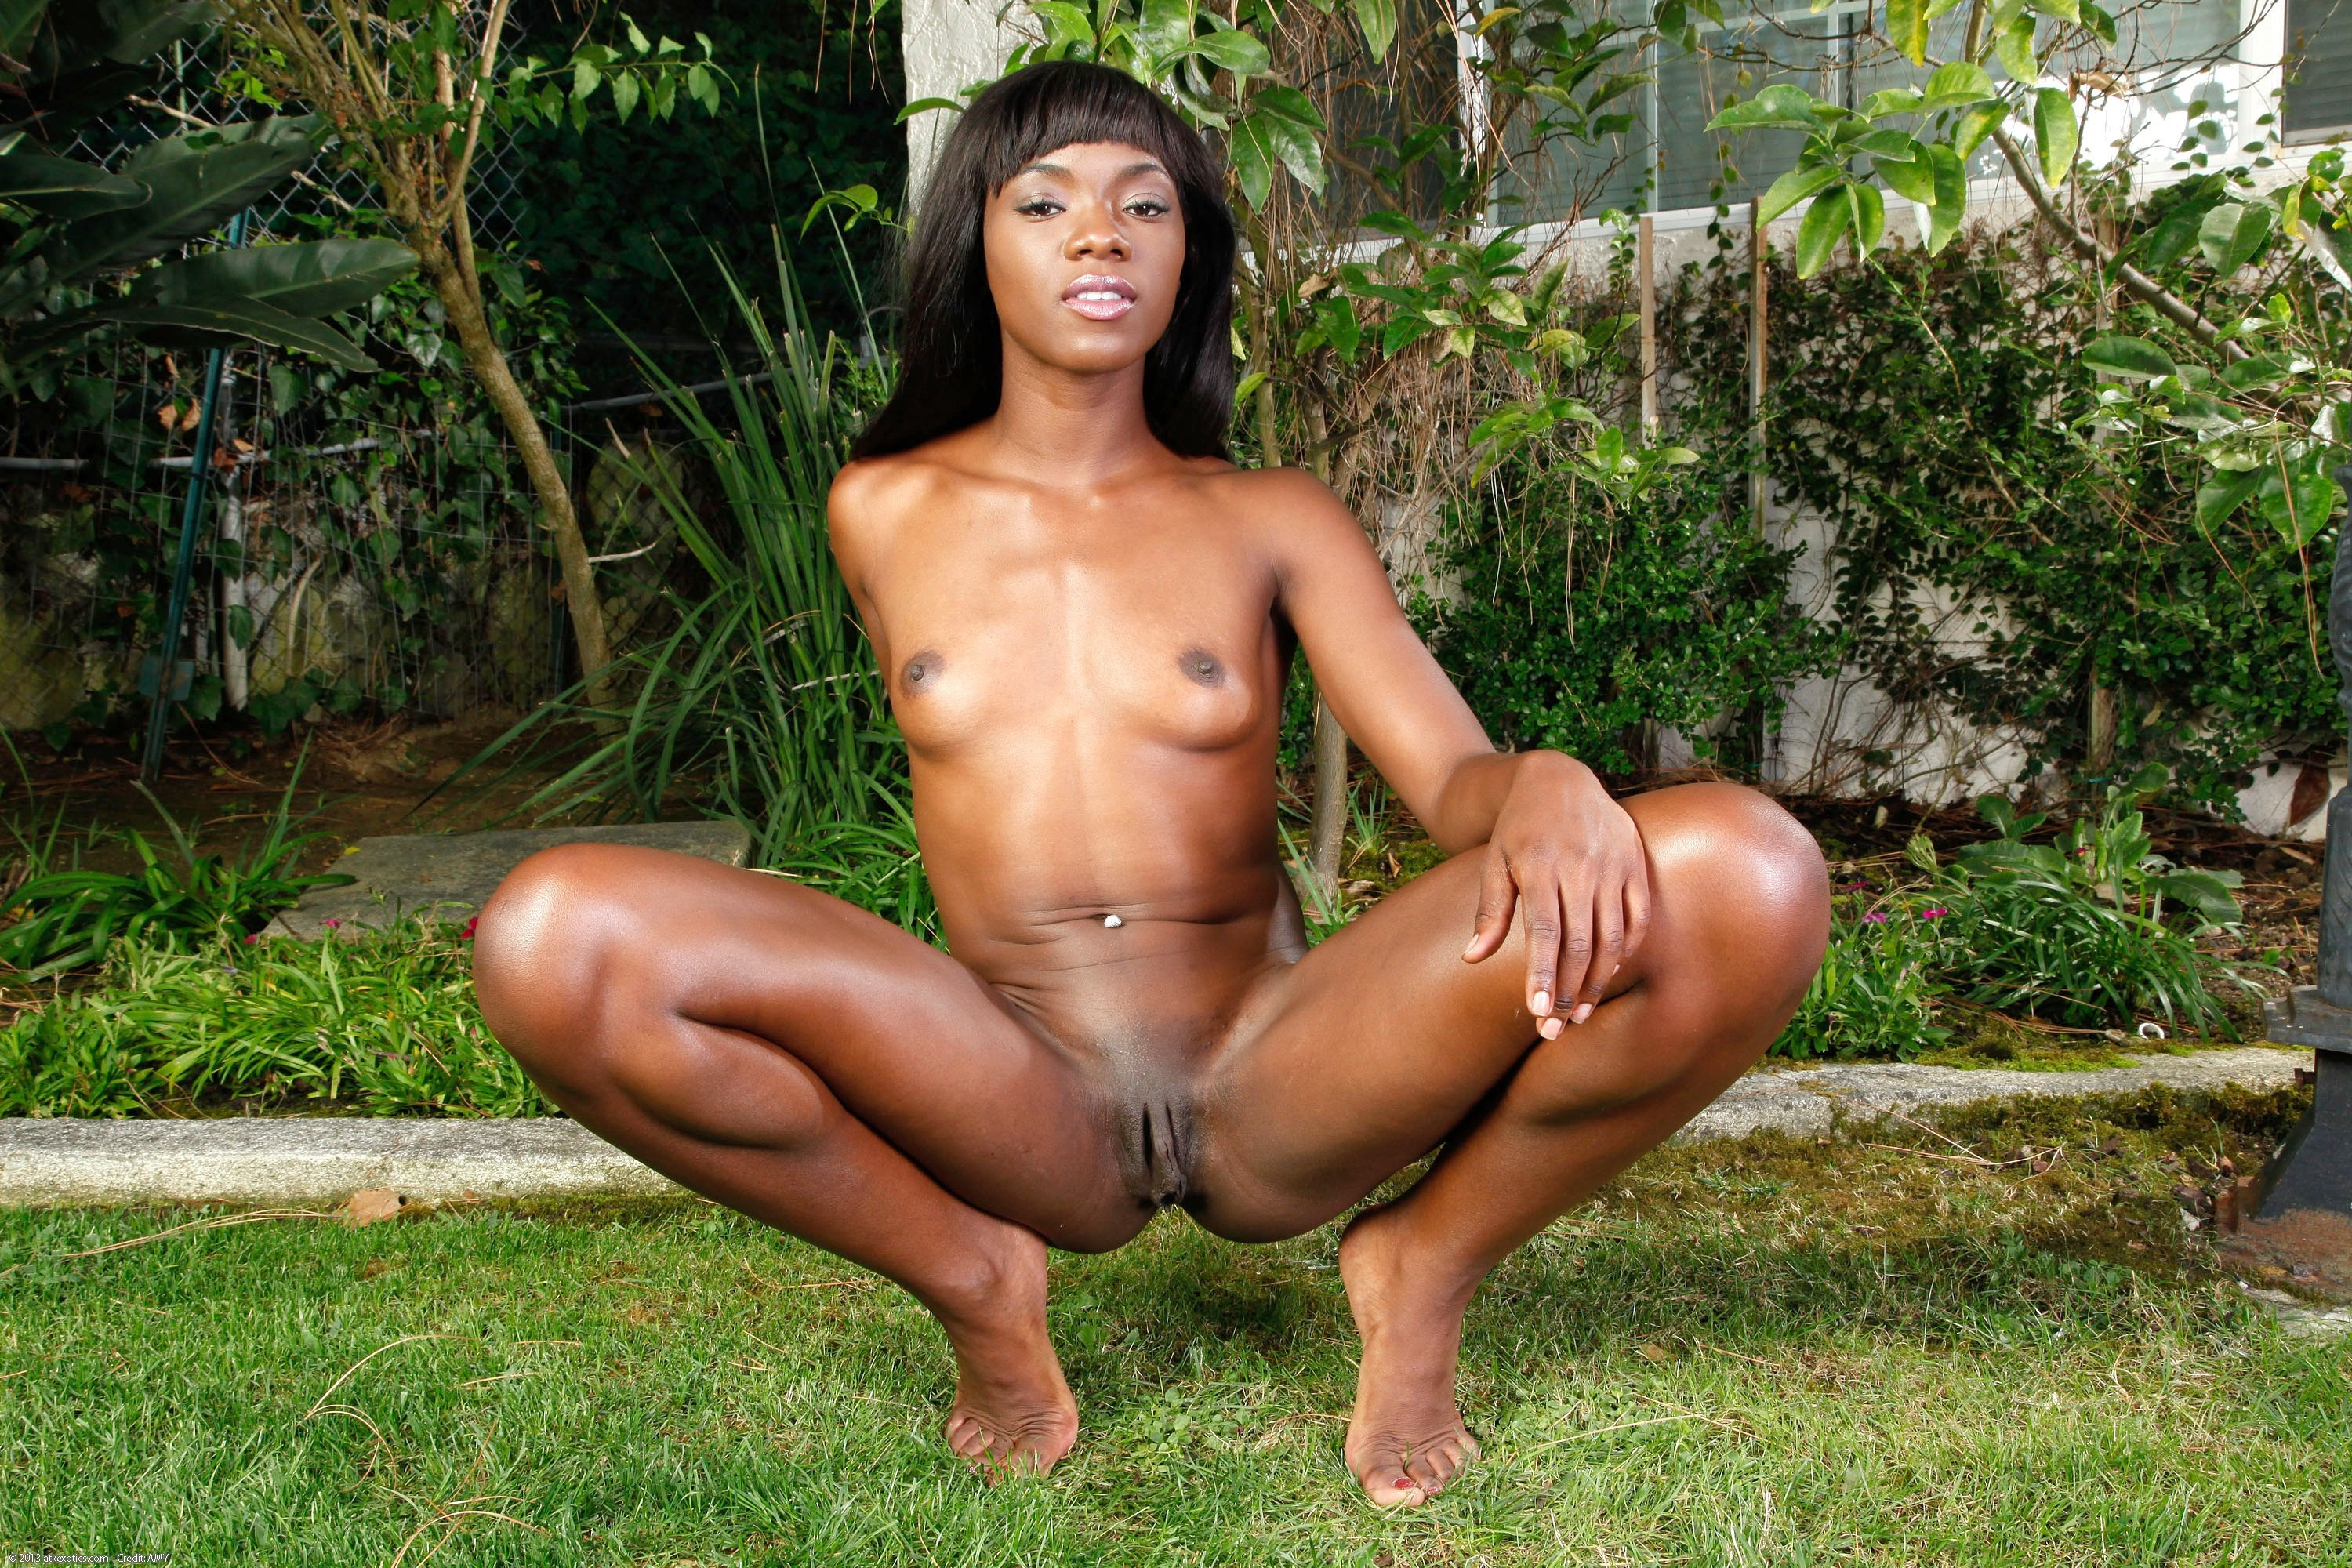 Wallpaper ana foxxx, brunette, black girl desktop wallpaper - XXX walls -  ID: 73519 - ftopx.com